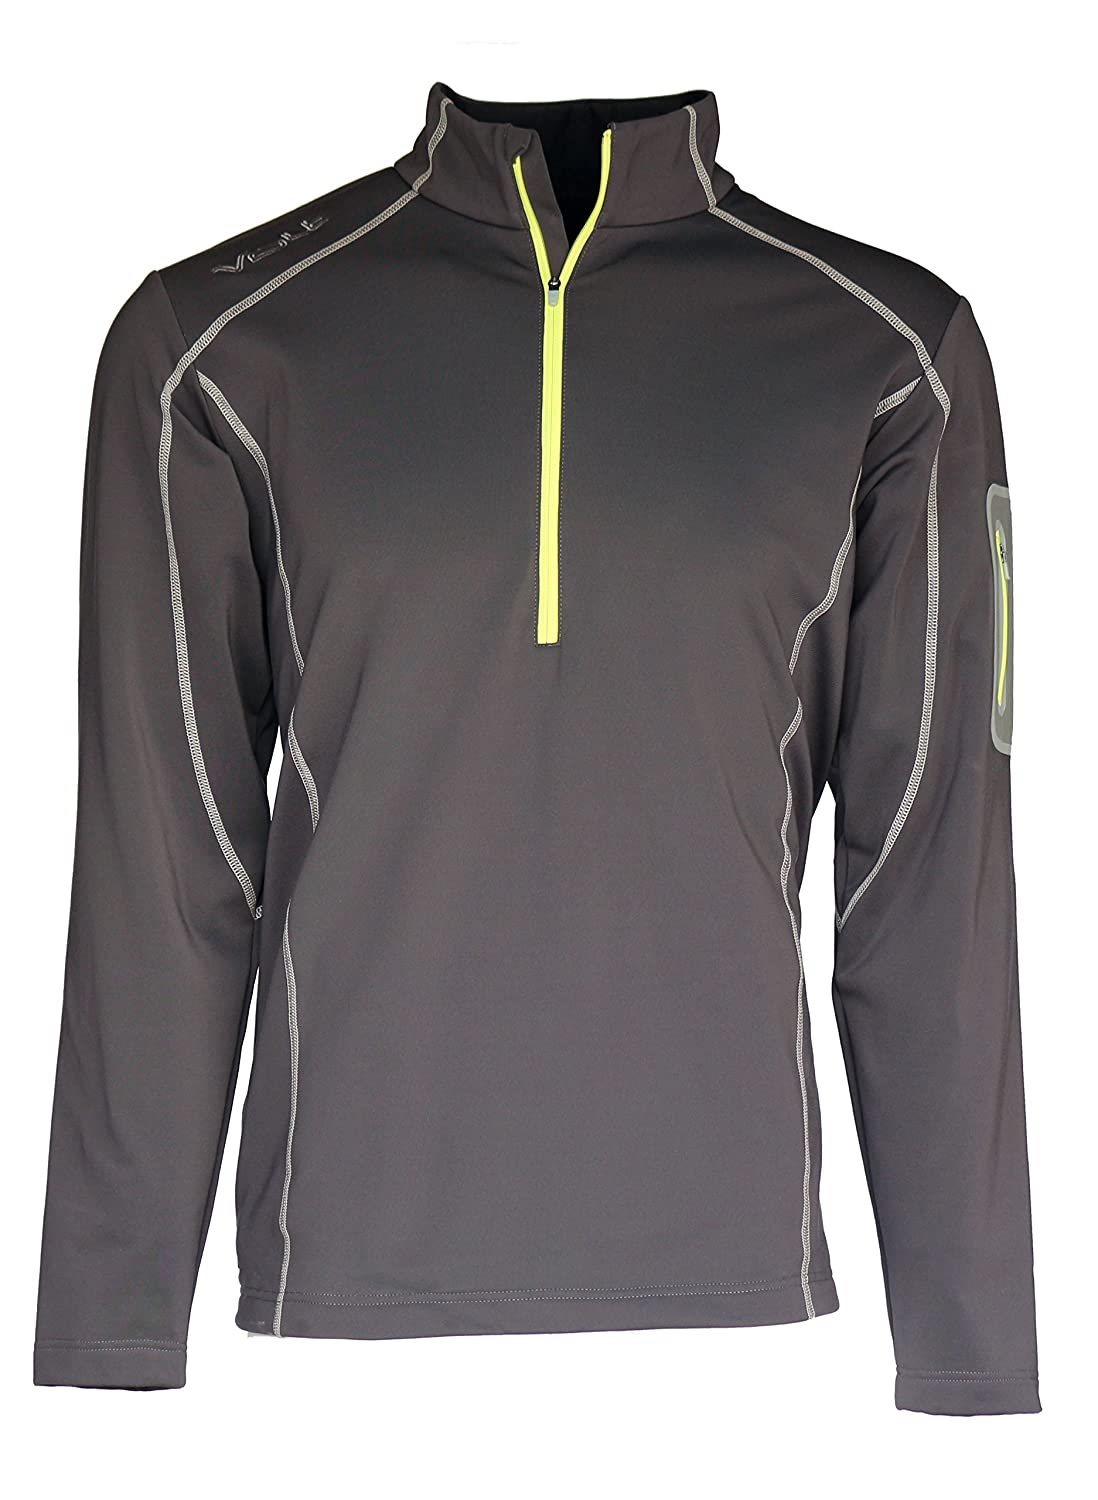 VOLT Men's 5V Heated Thermal Half-Zip Heated Jacket with Three Heat Settings, Cold Weather Clothing, USA Designed and Developed, Perfect for Winter Sports, Patented Zero-Layer Heat System Grey) 5V-THZ-MG-L